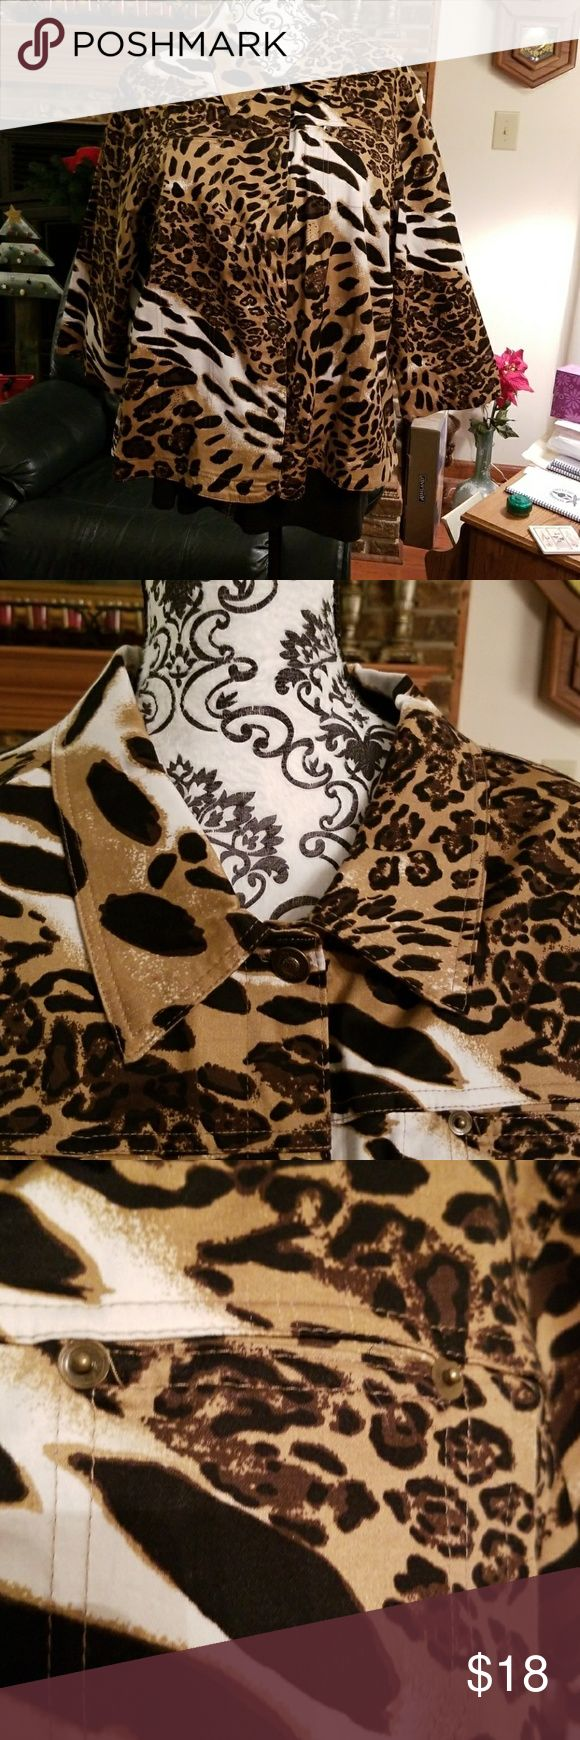 Animal print jacket EUC. Mirror Image animal print jacket. Unlinked and lightweight. Can be worn as a jacket or a blazer. Very comfortable with some stretch from.the spandex. Pair it with black, Brown or cream dress pants for office or a pair of jeans for weekend wear. Mirror Image Jackets & Coats Blazers